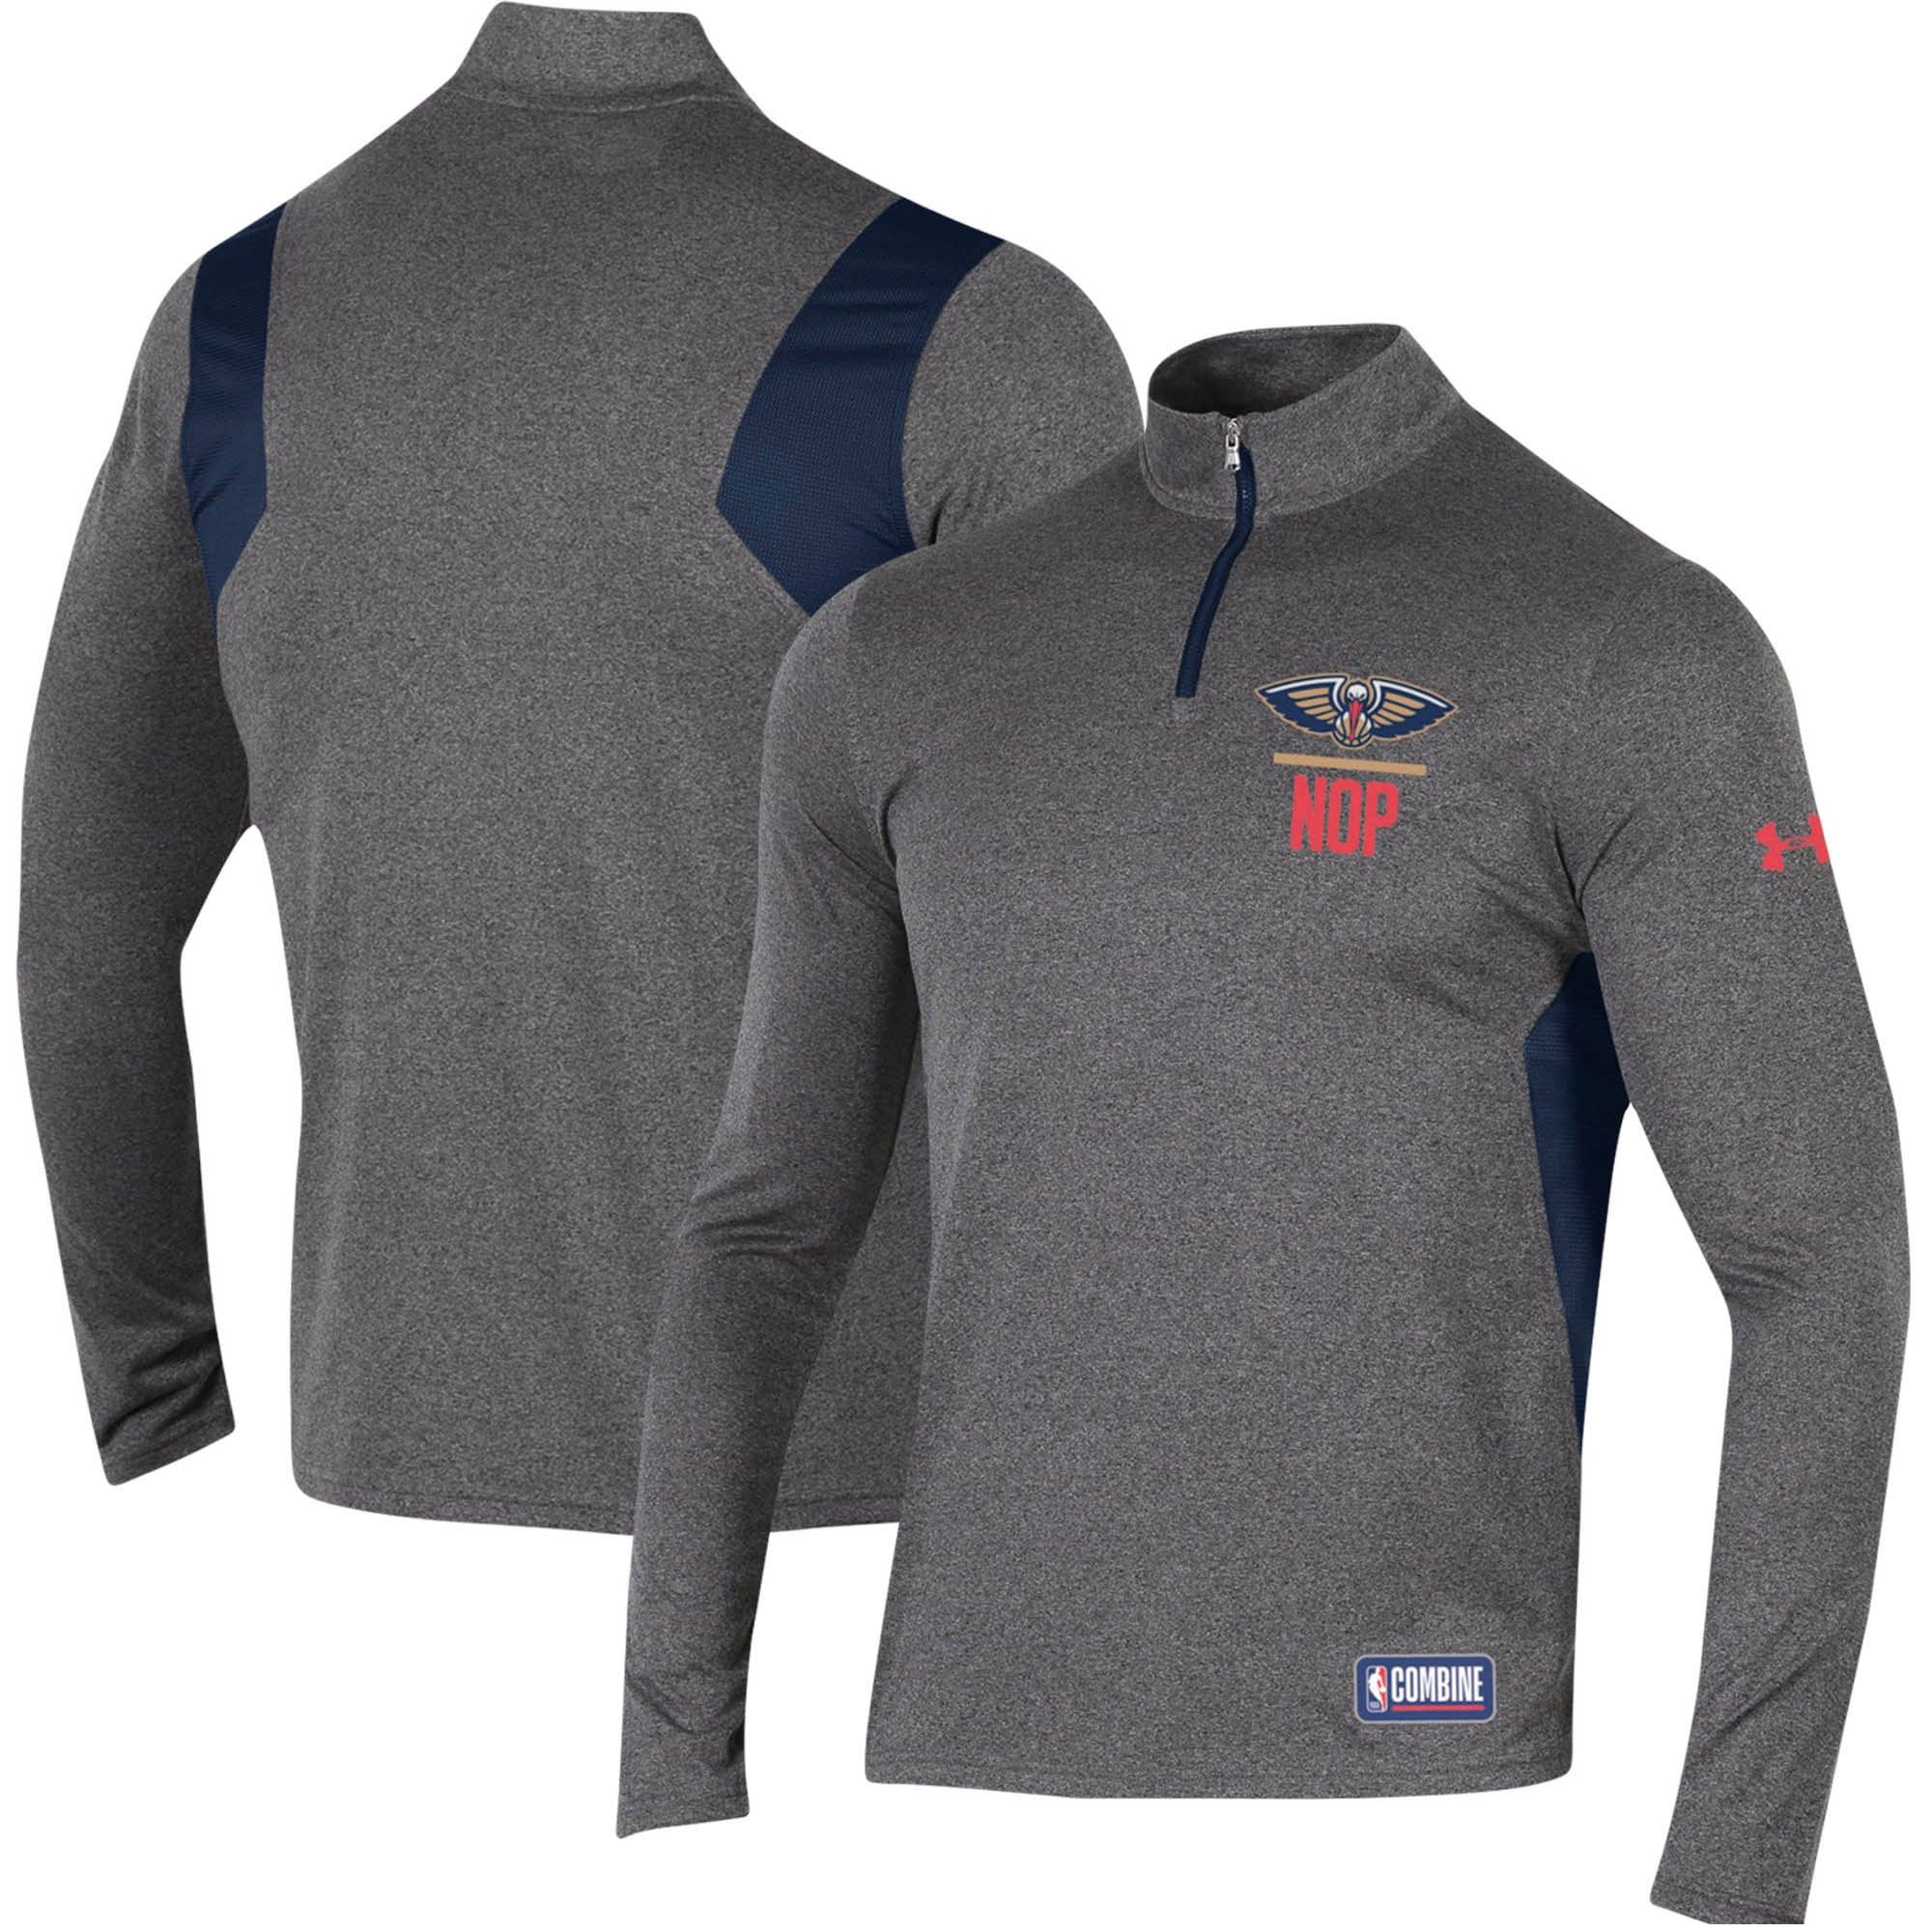 New Orleans Pelicans Under Armour Combine Authentic Season Tech Quarter-Zip Pullover Jacket - Heathered Charcoal